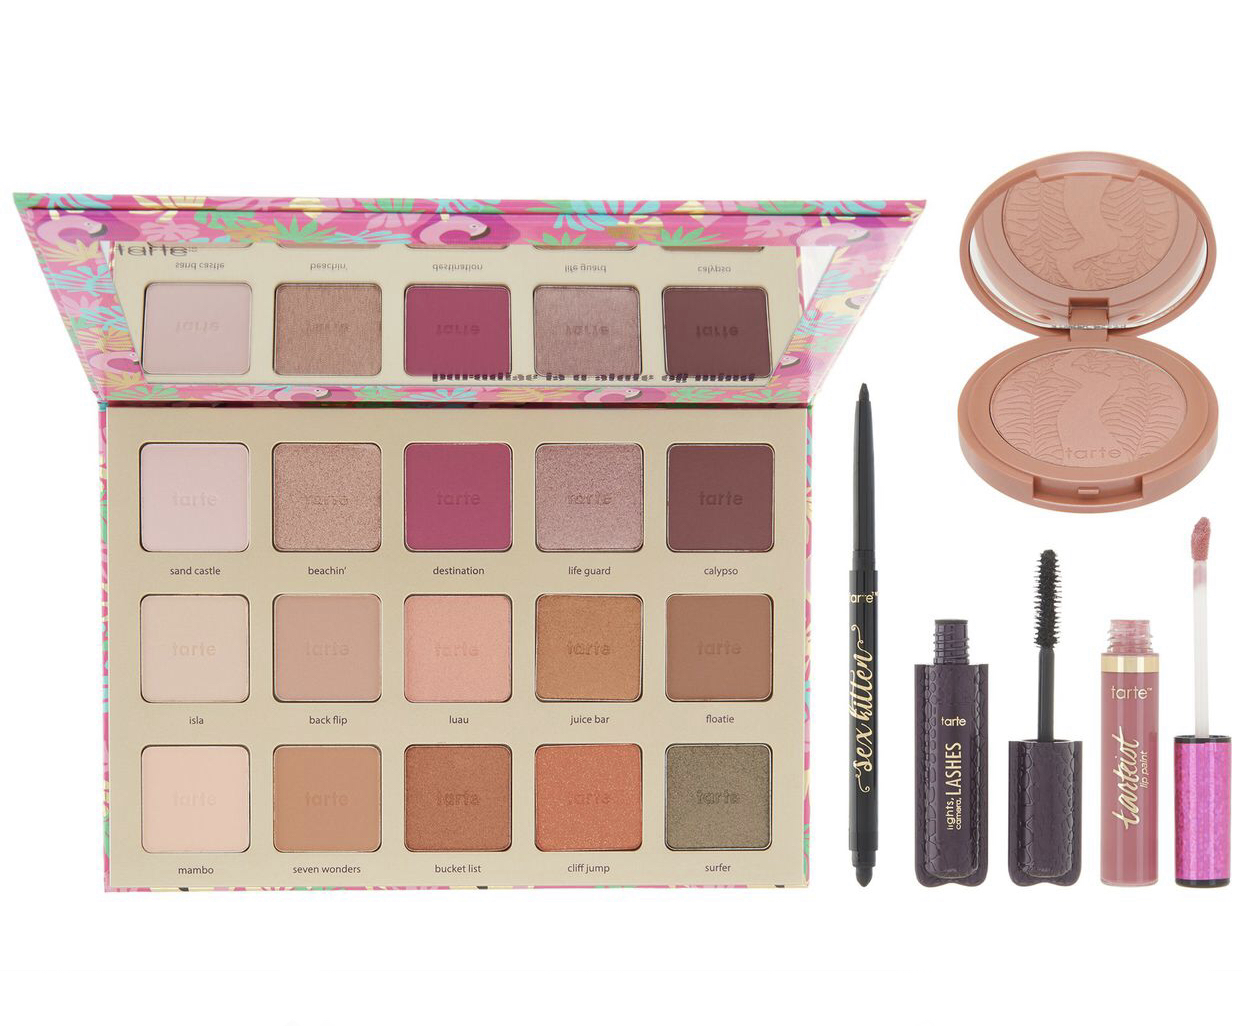 QVC eyeshadow palette set